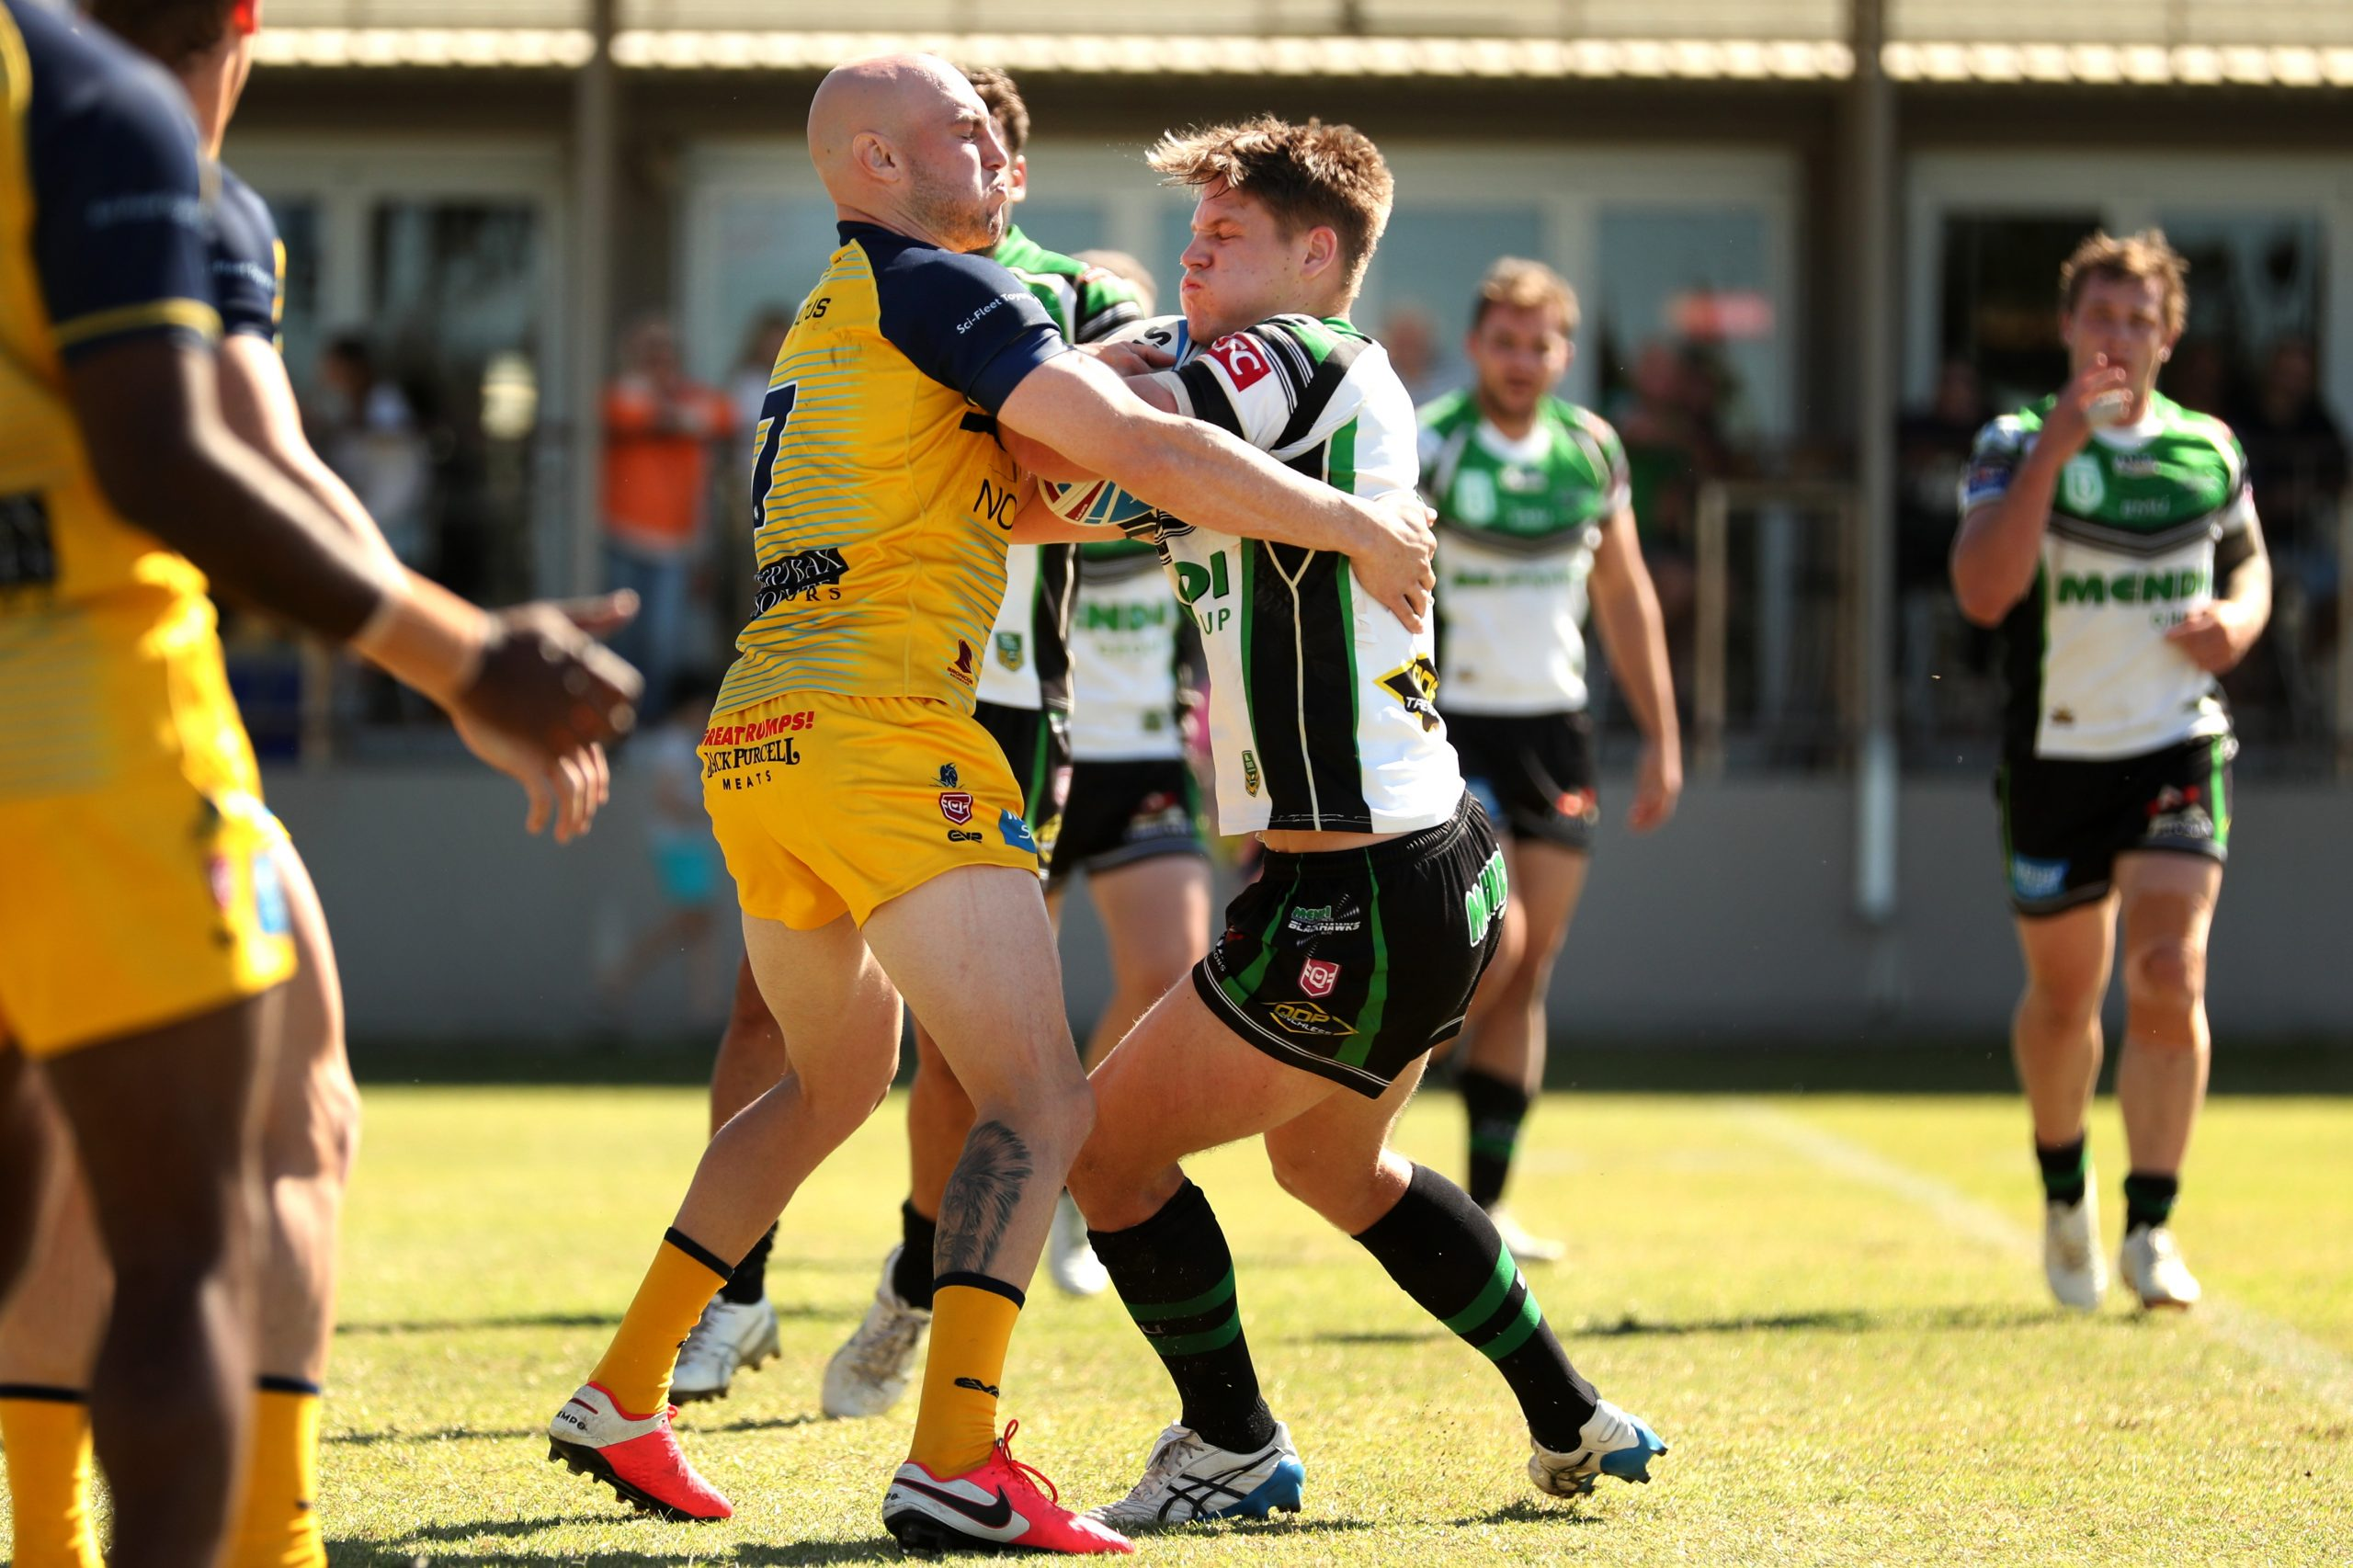 Devils continue their run with takedown of Townsville